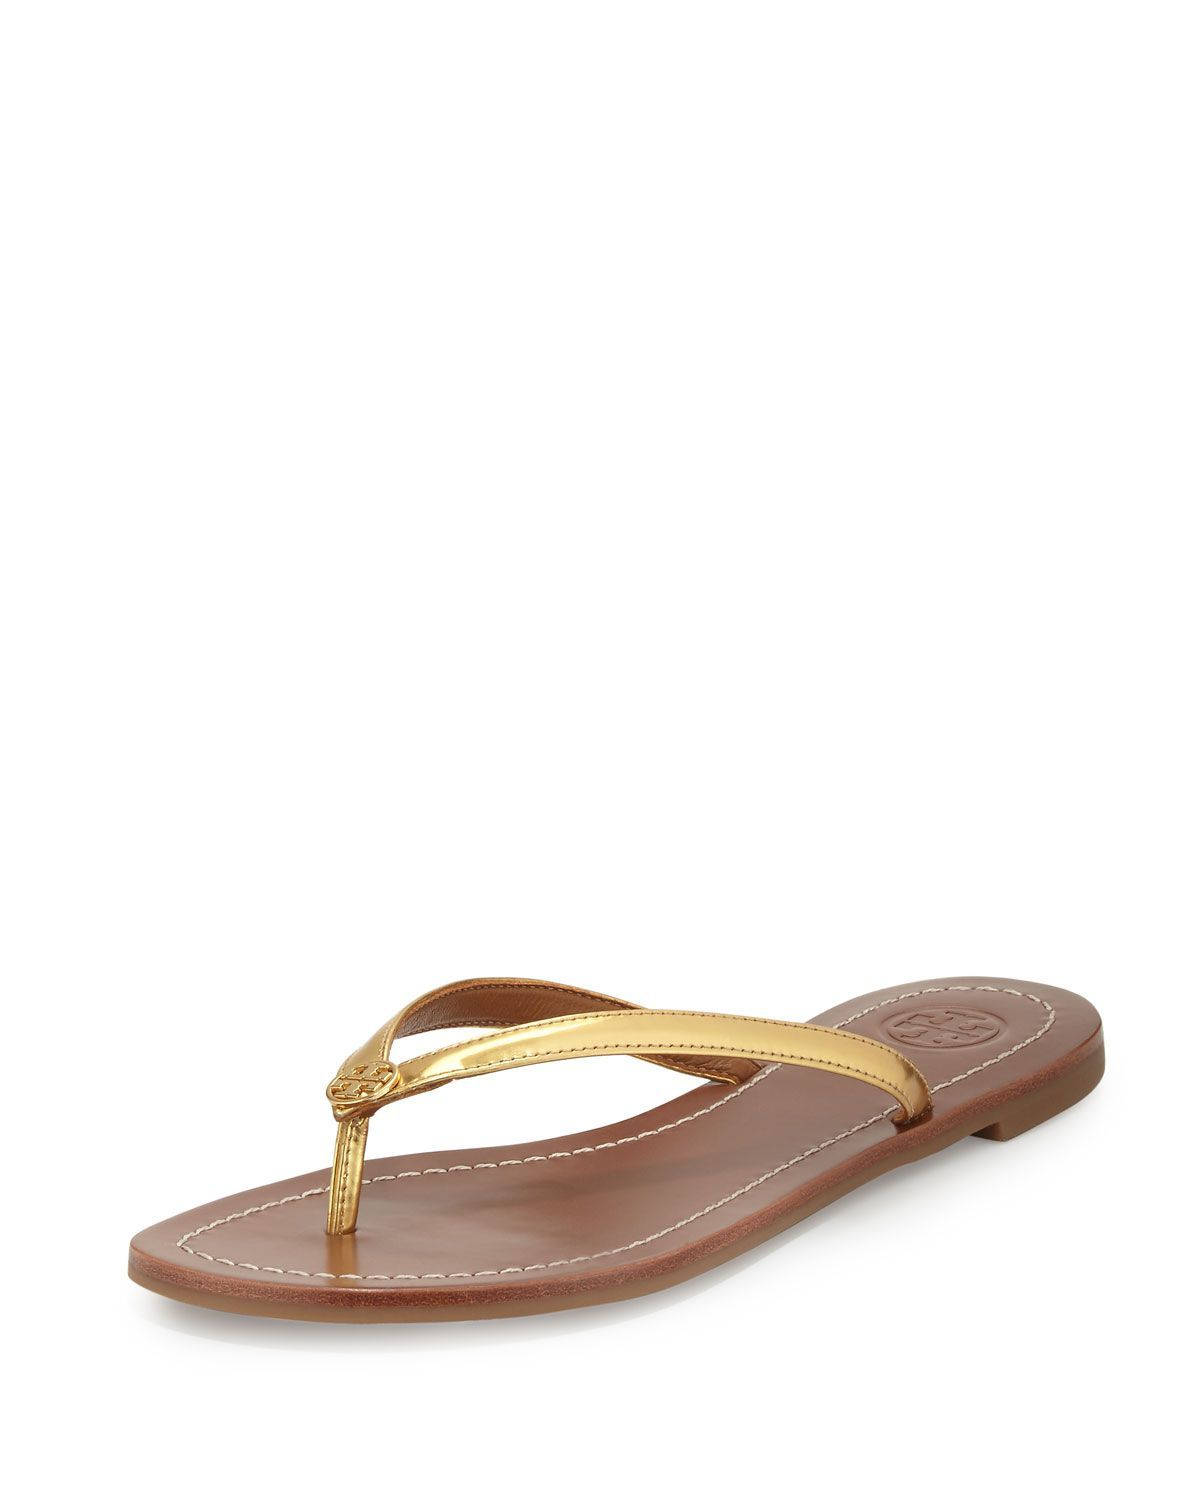 8db5f8d8946 Tory Burch Terra Metallic Thong Sandal